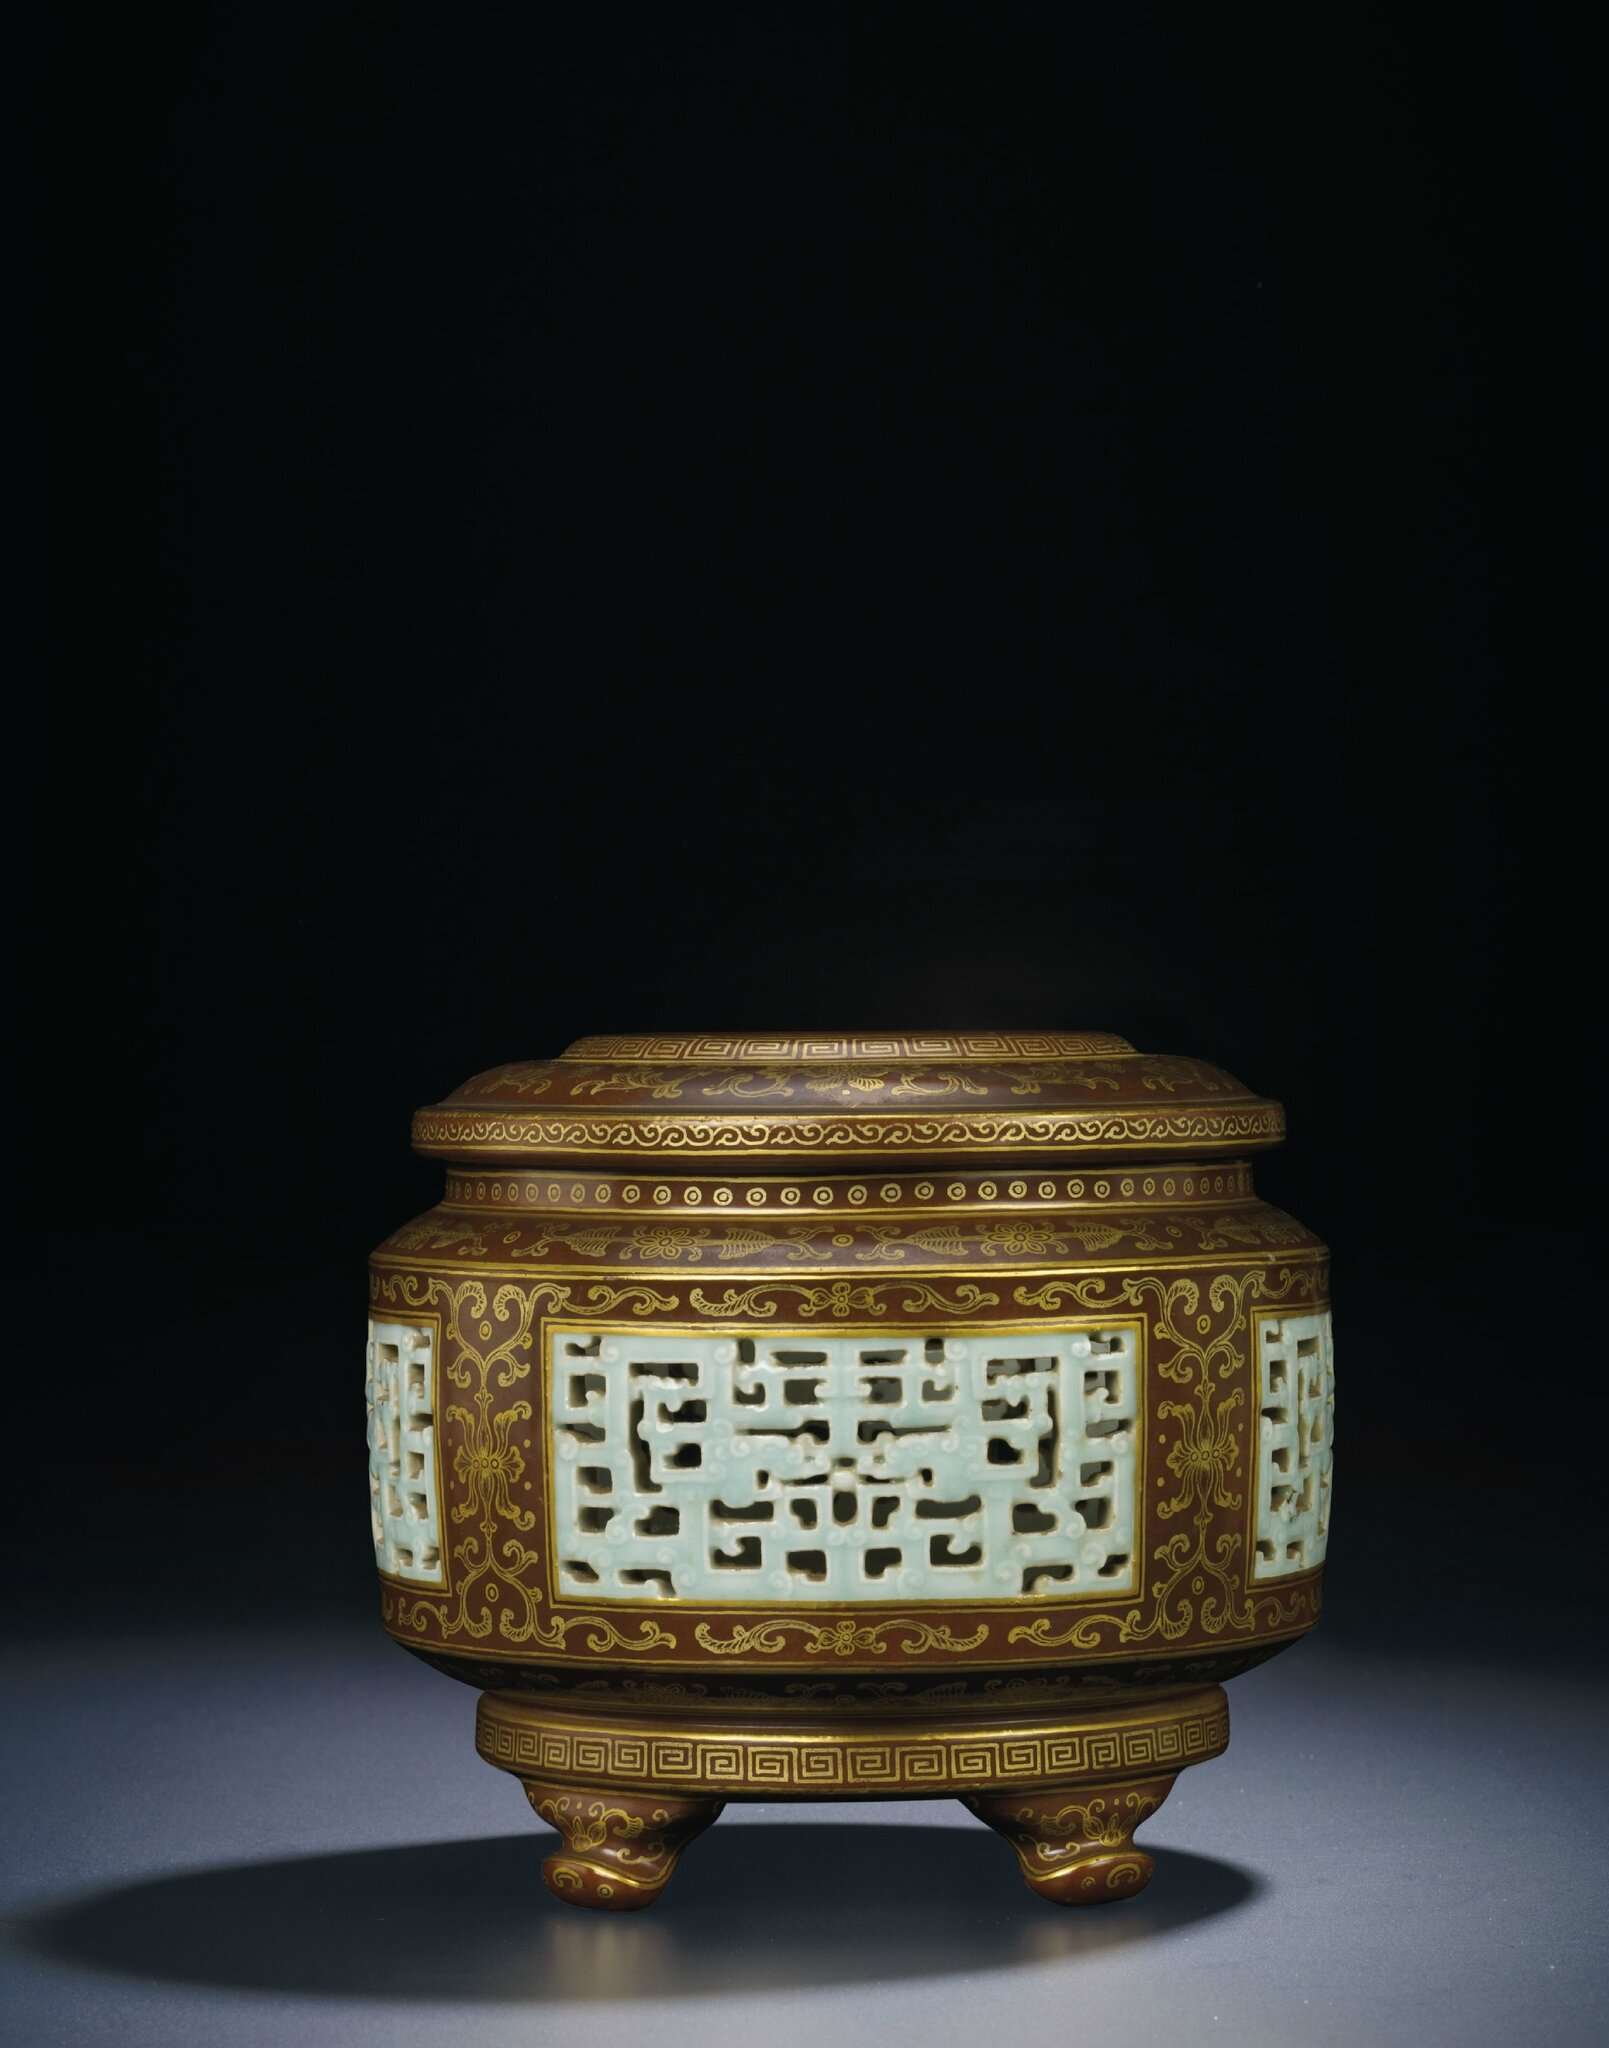 A very rare gilt-decorated 'imitation bronze' reticulated censer, Qianlong gilt six-character seal mark and of the period (1736-1795)